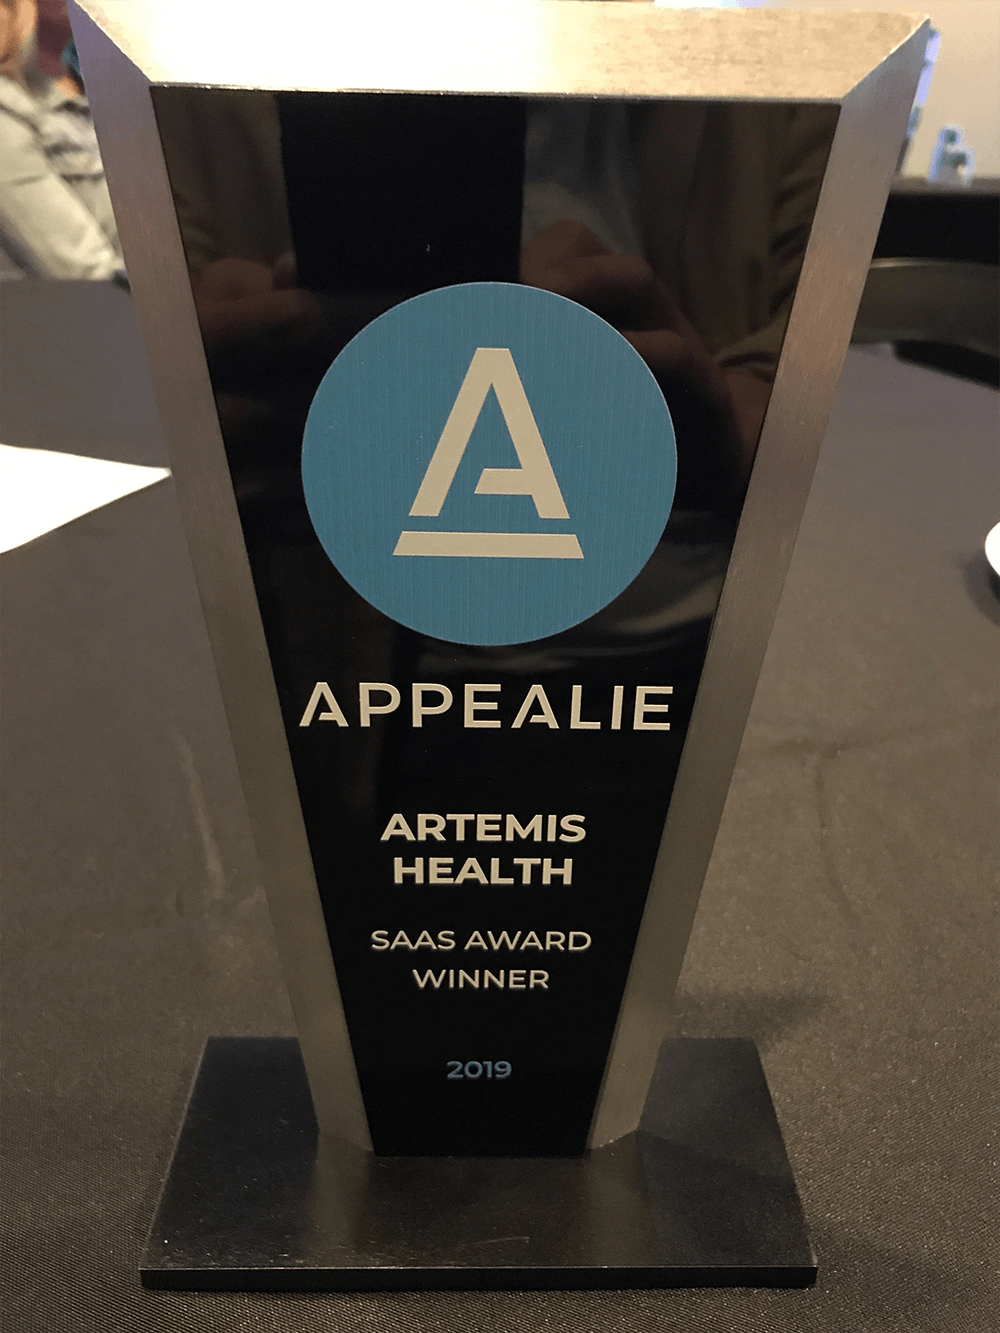 Artemis APPEALIE SaaS award trophy